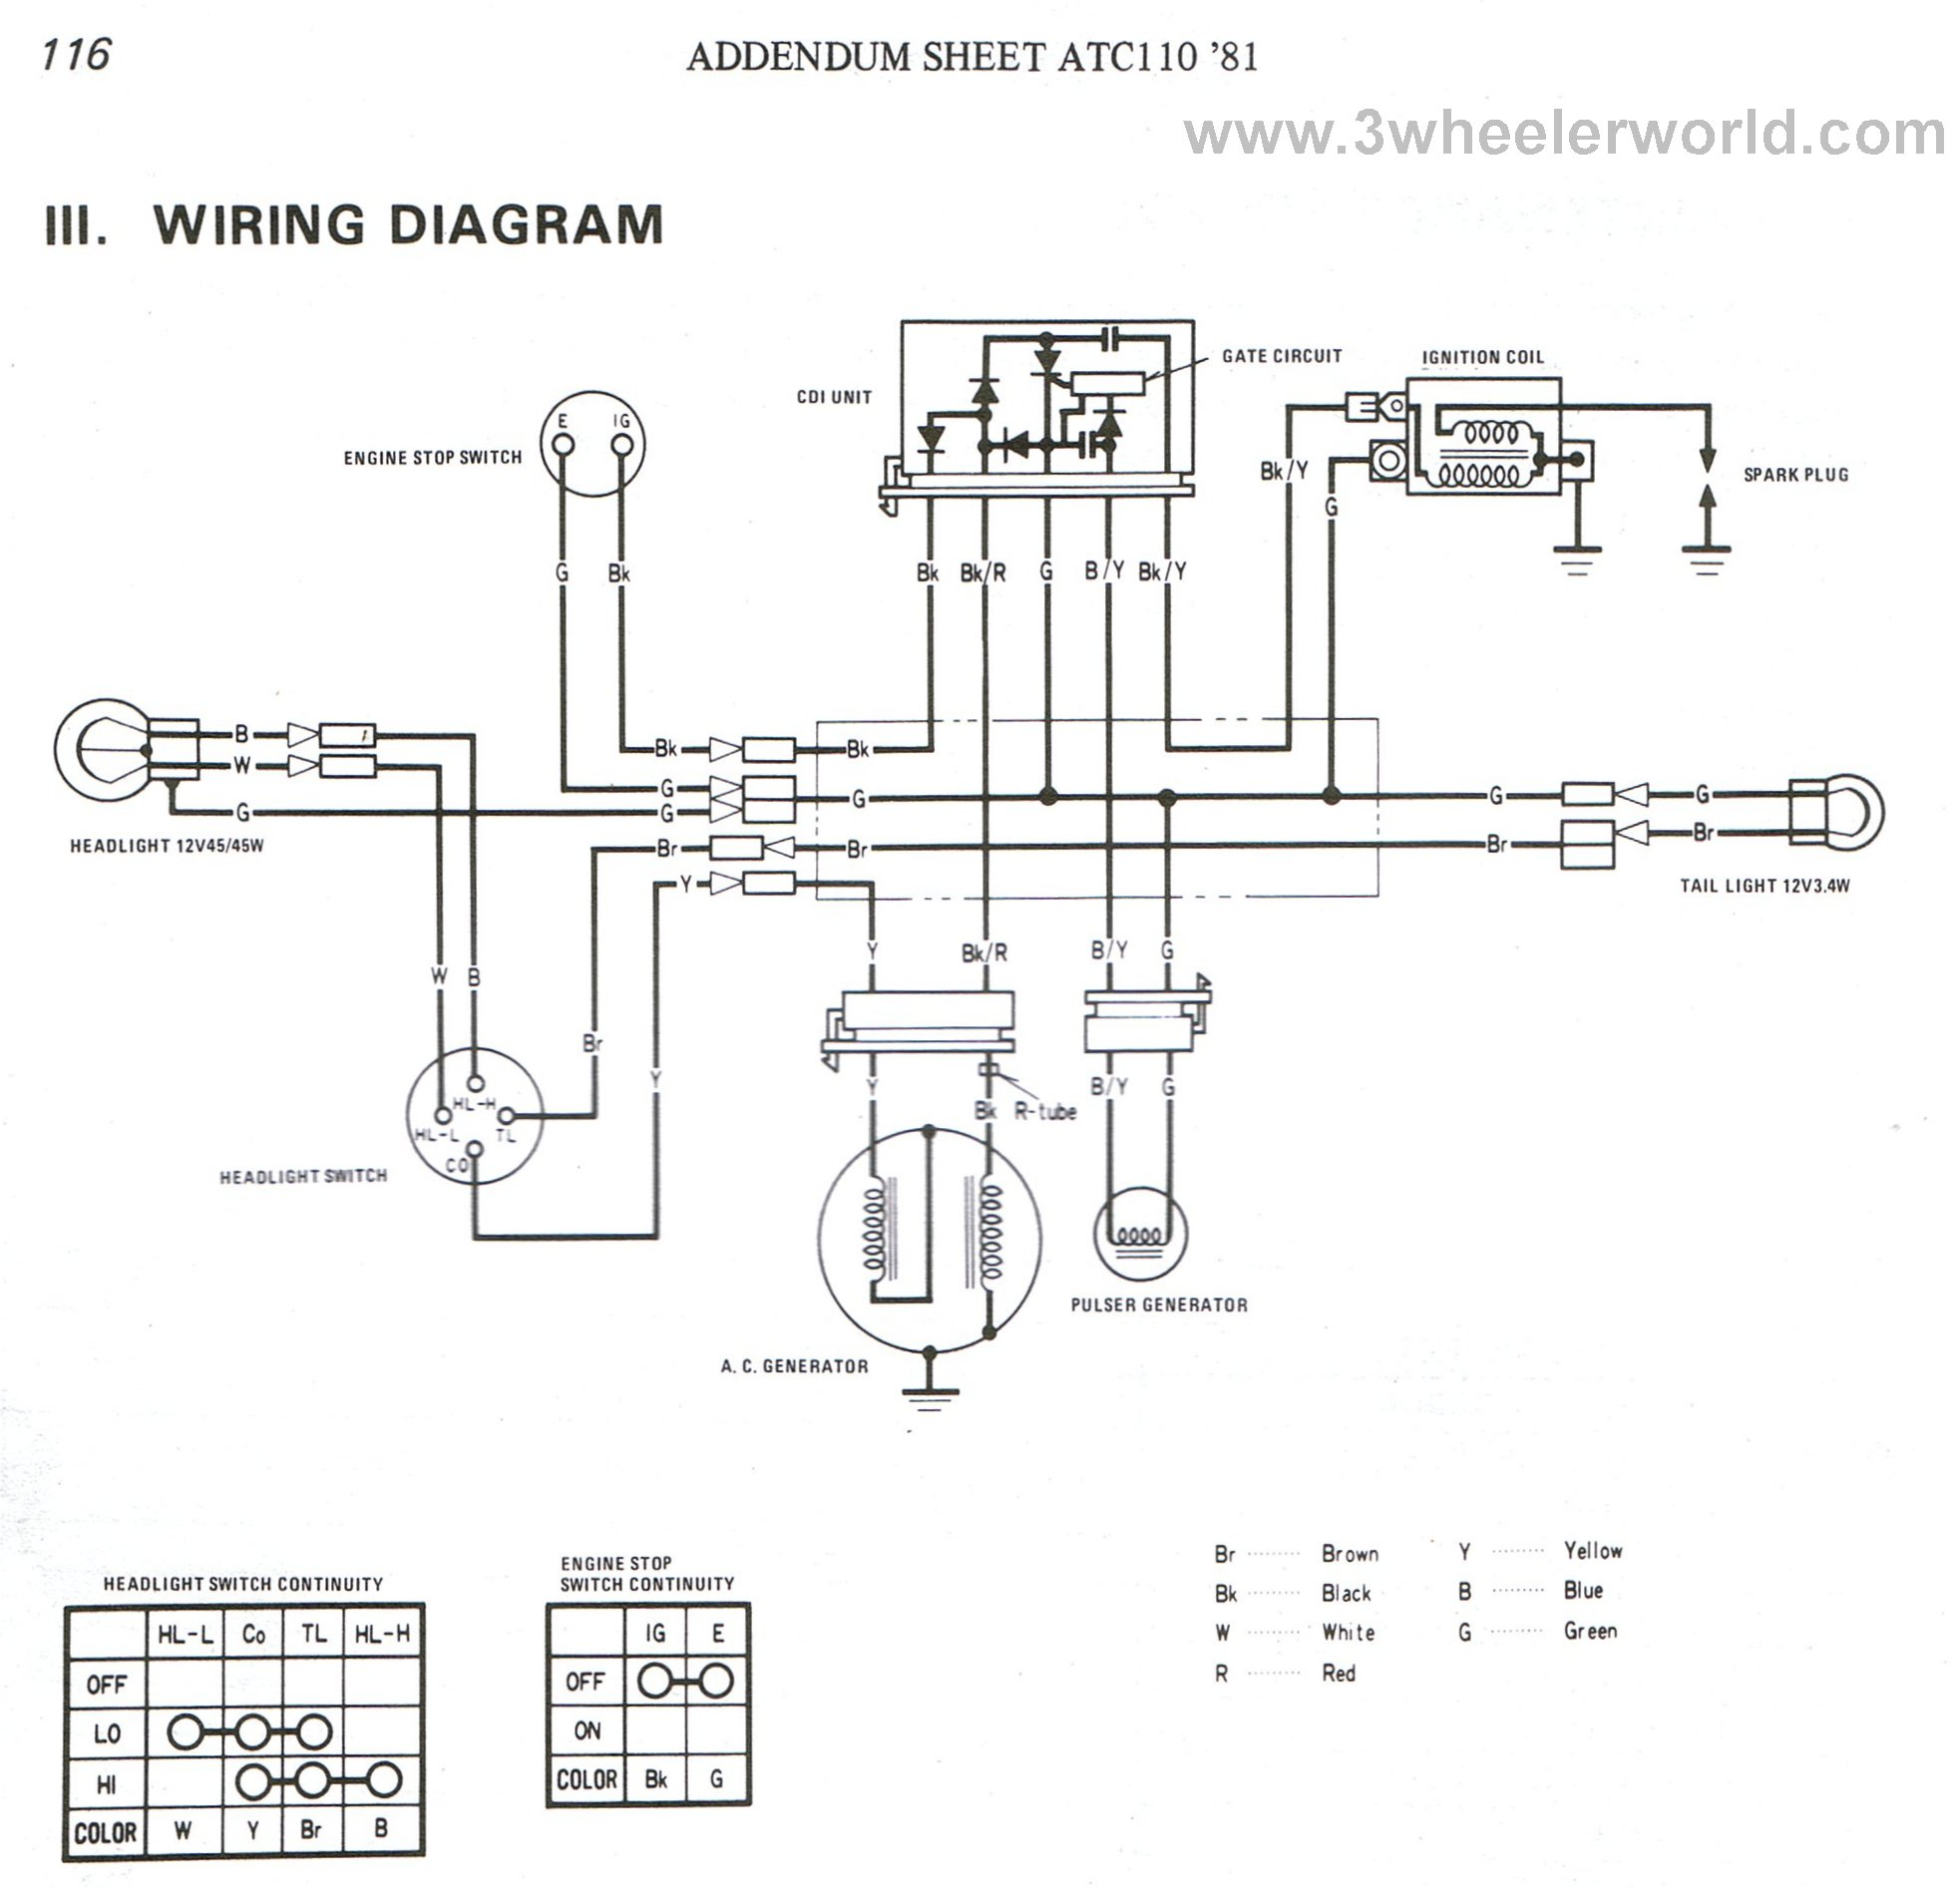 Honda Ct110 Wiring Diagram from www.3wheelerworld.com